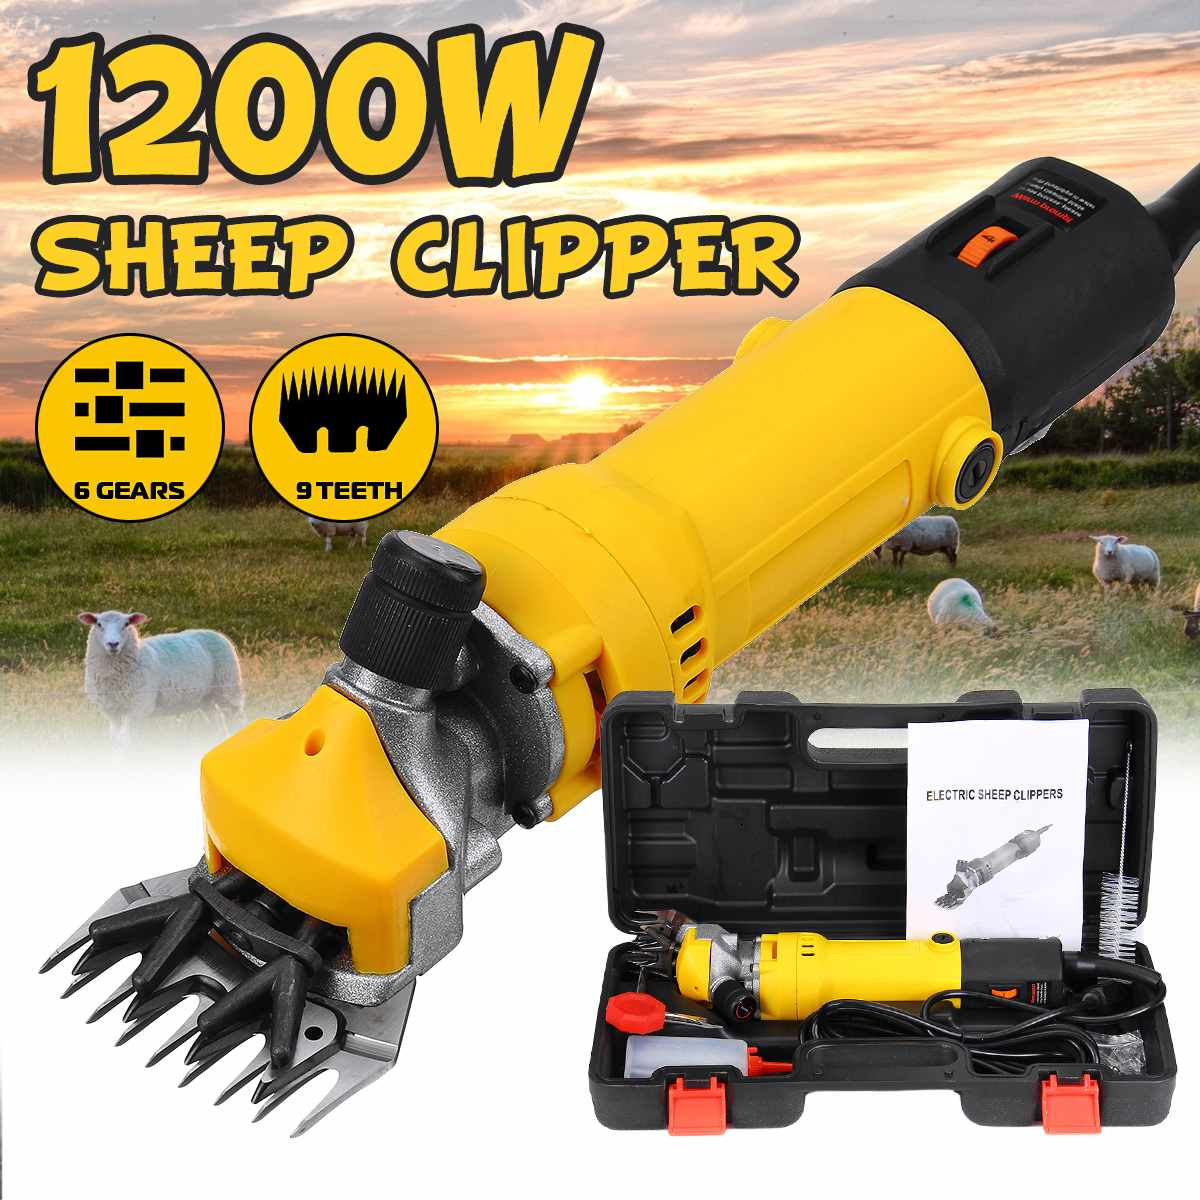 1200W 110V/220V 6 Gears Speed Electric Sheep Goat Shearing Machine Clipper Farm Shears Cutter Wool Scissor Cut Machine